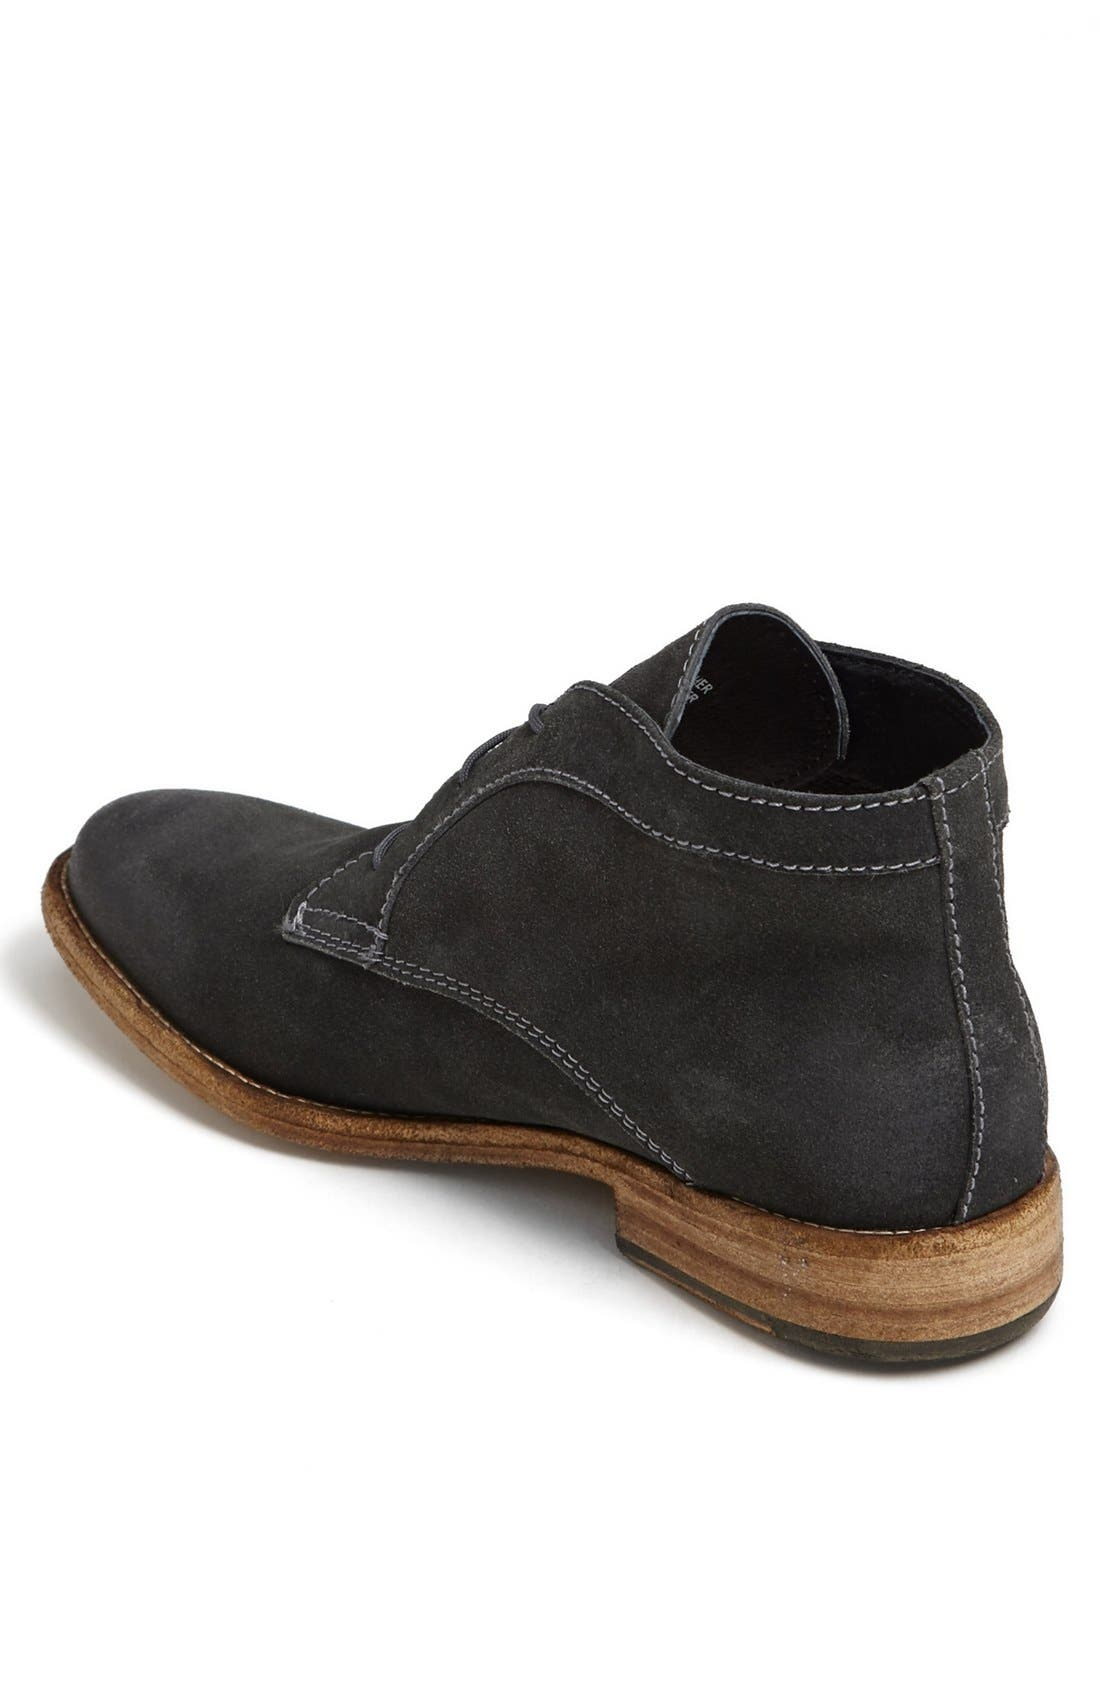 Alternate Image 2  - J.D. Fisk 'Krakow' Chukka Boot (Men)